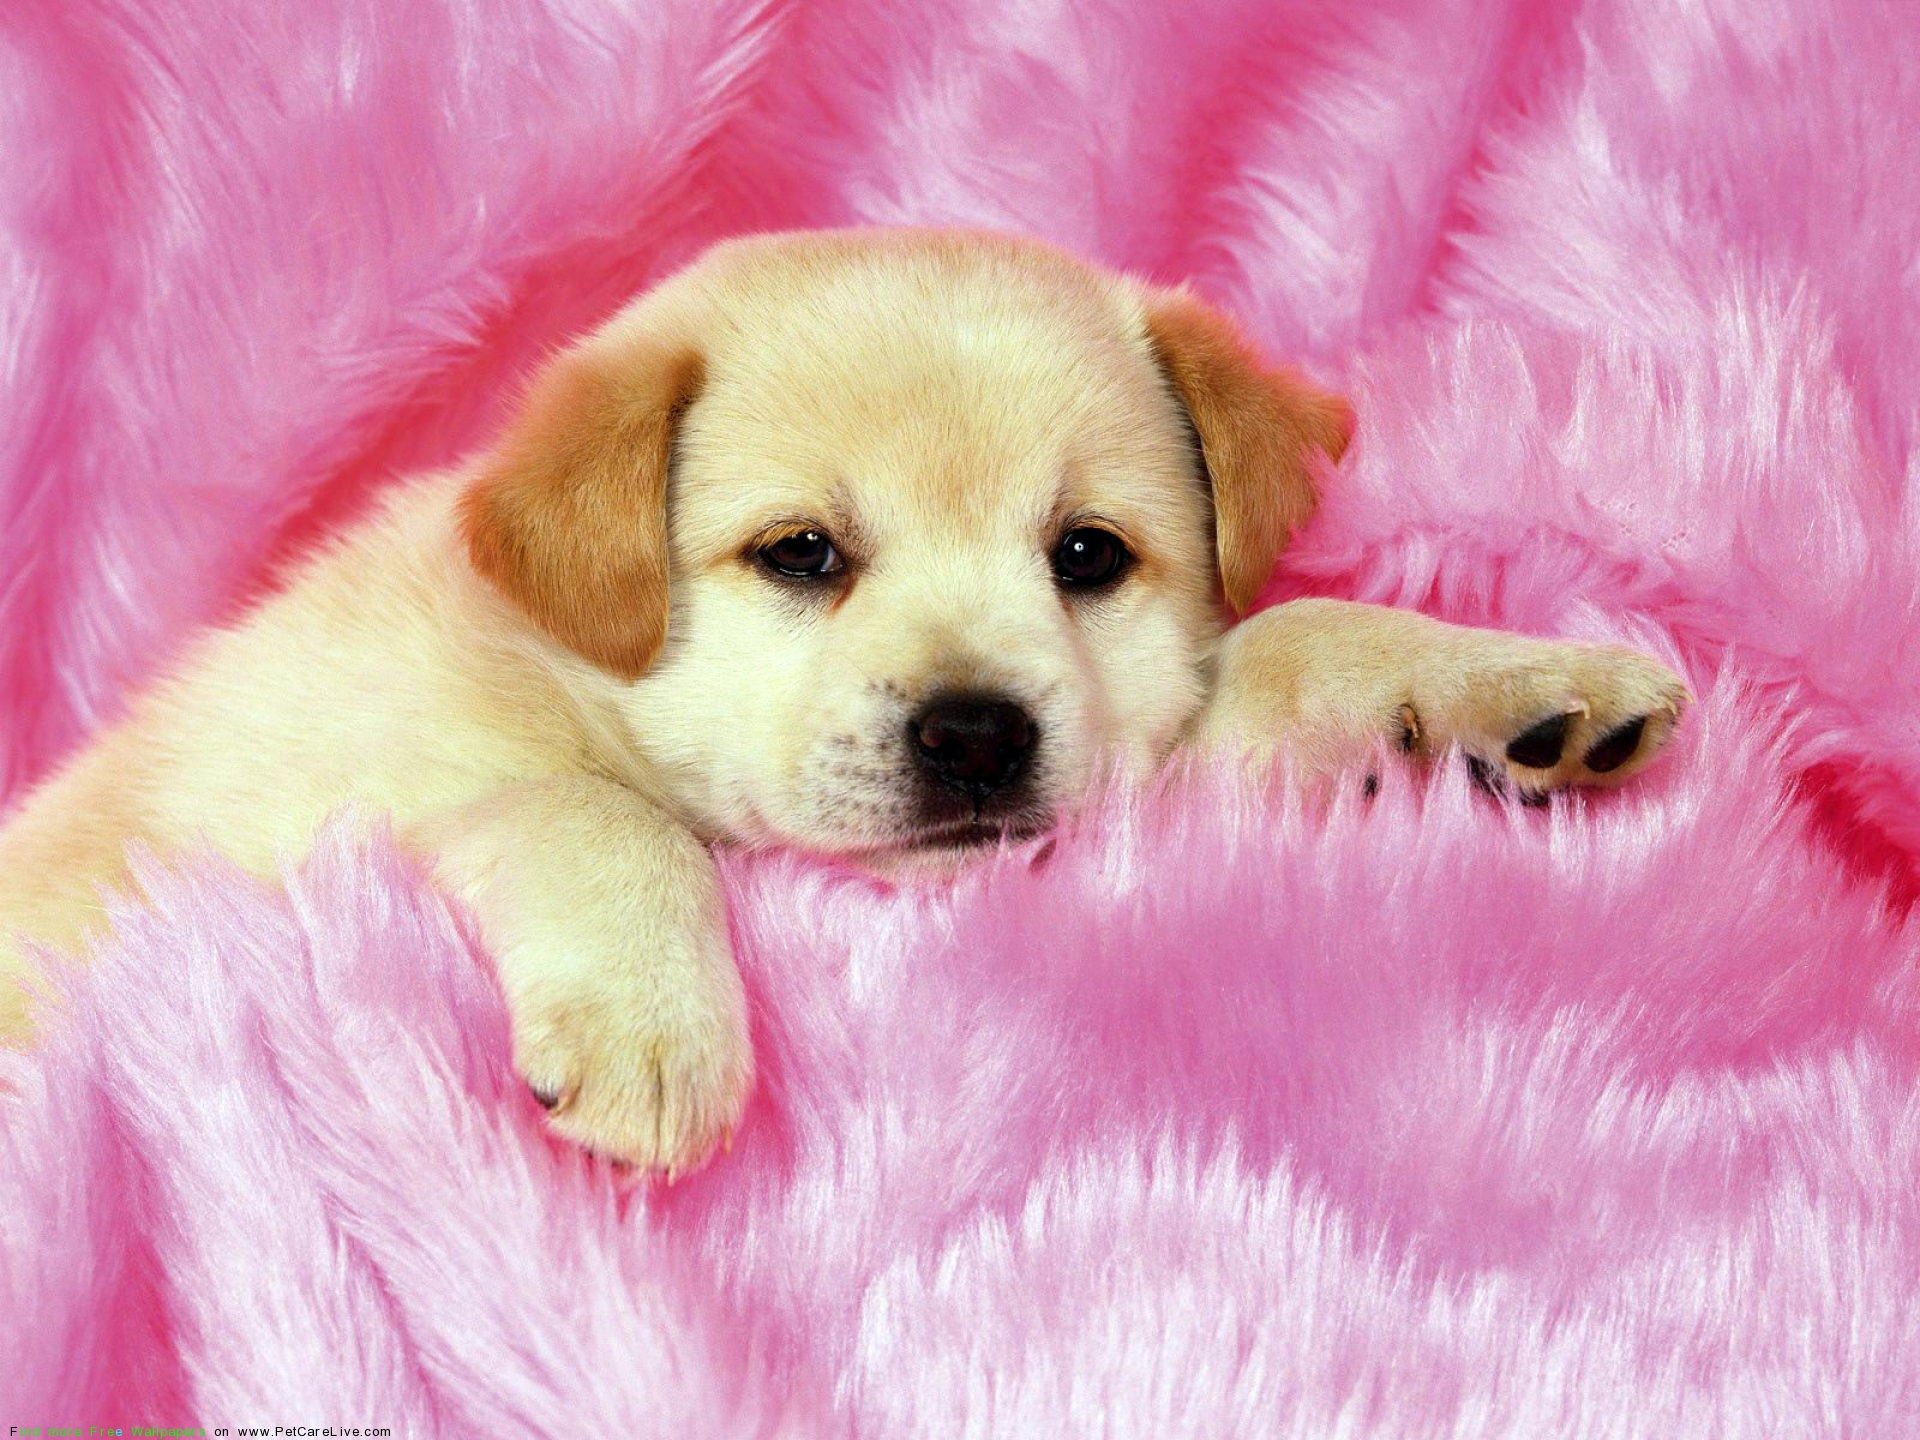 Puppy Wallpaper Free